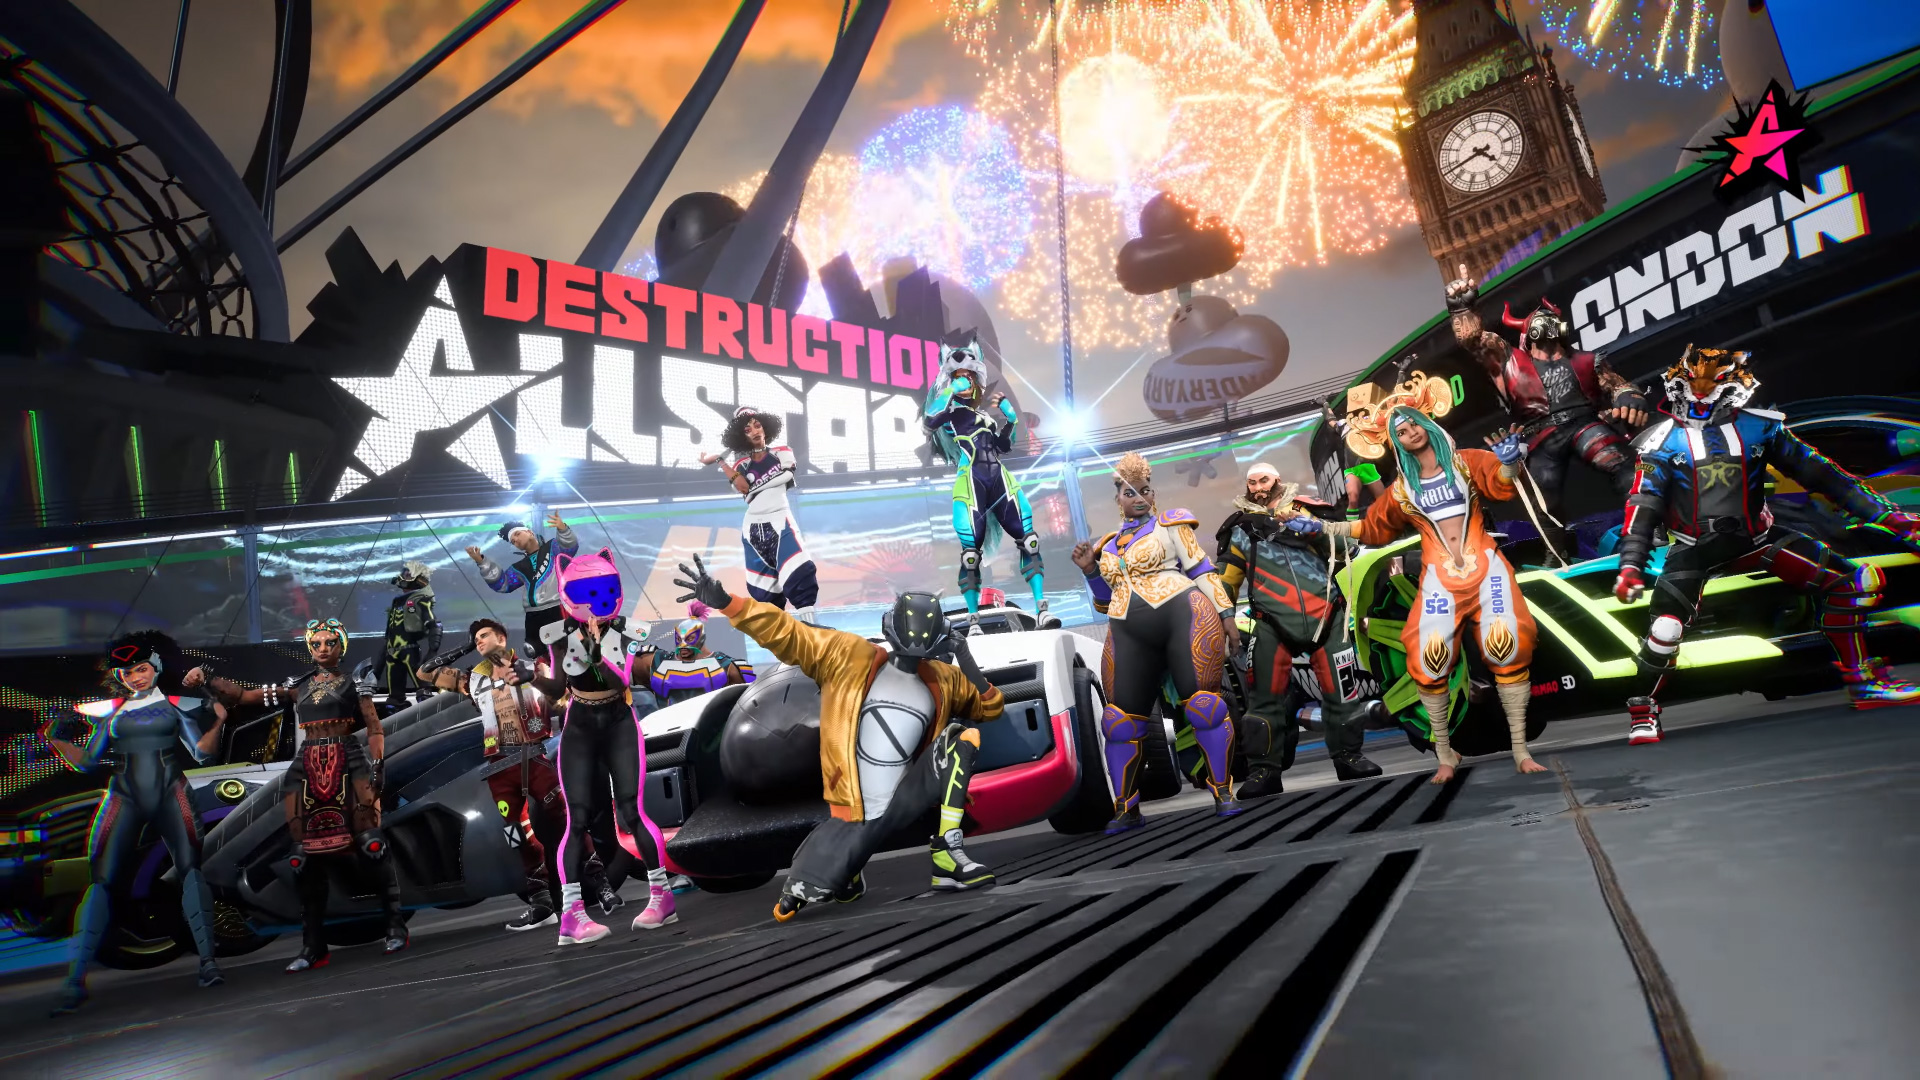 It's time to call dibs on the best Destruction AllStars characters - TechnoCodex